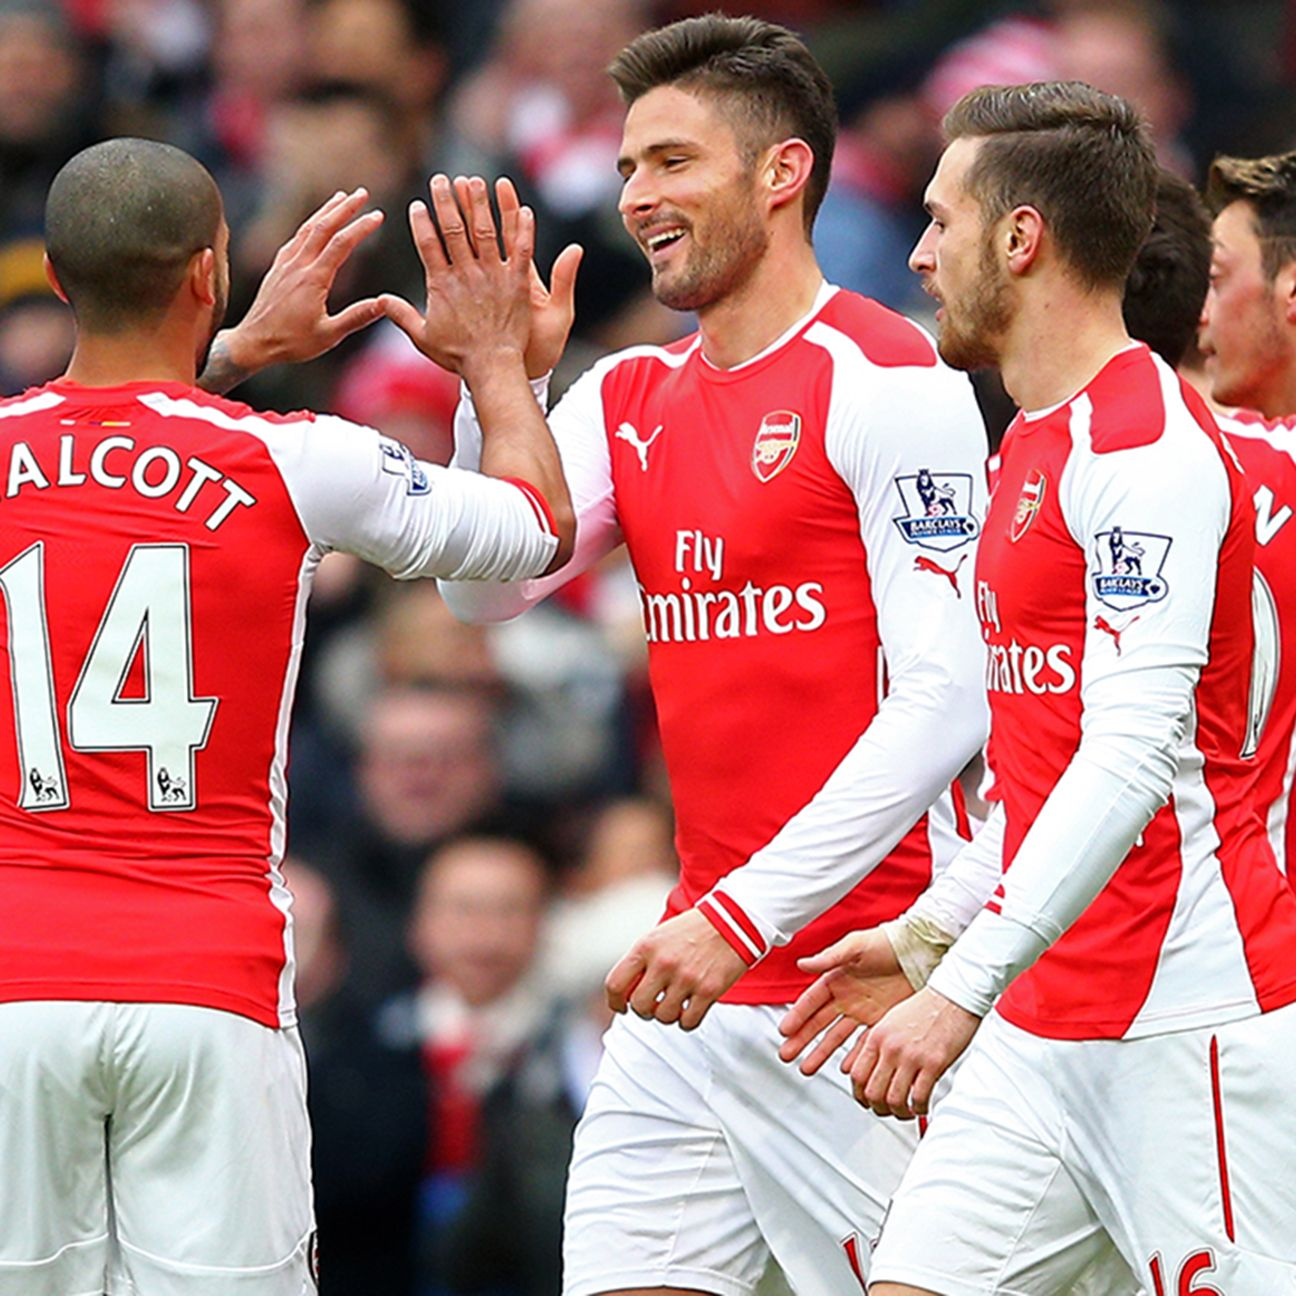 Despite being behind Southampton in the table, Arsenal projects to finish above the Saints.